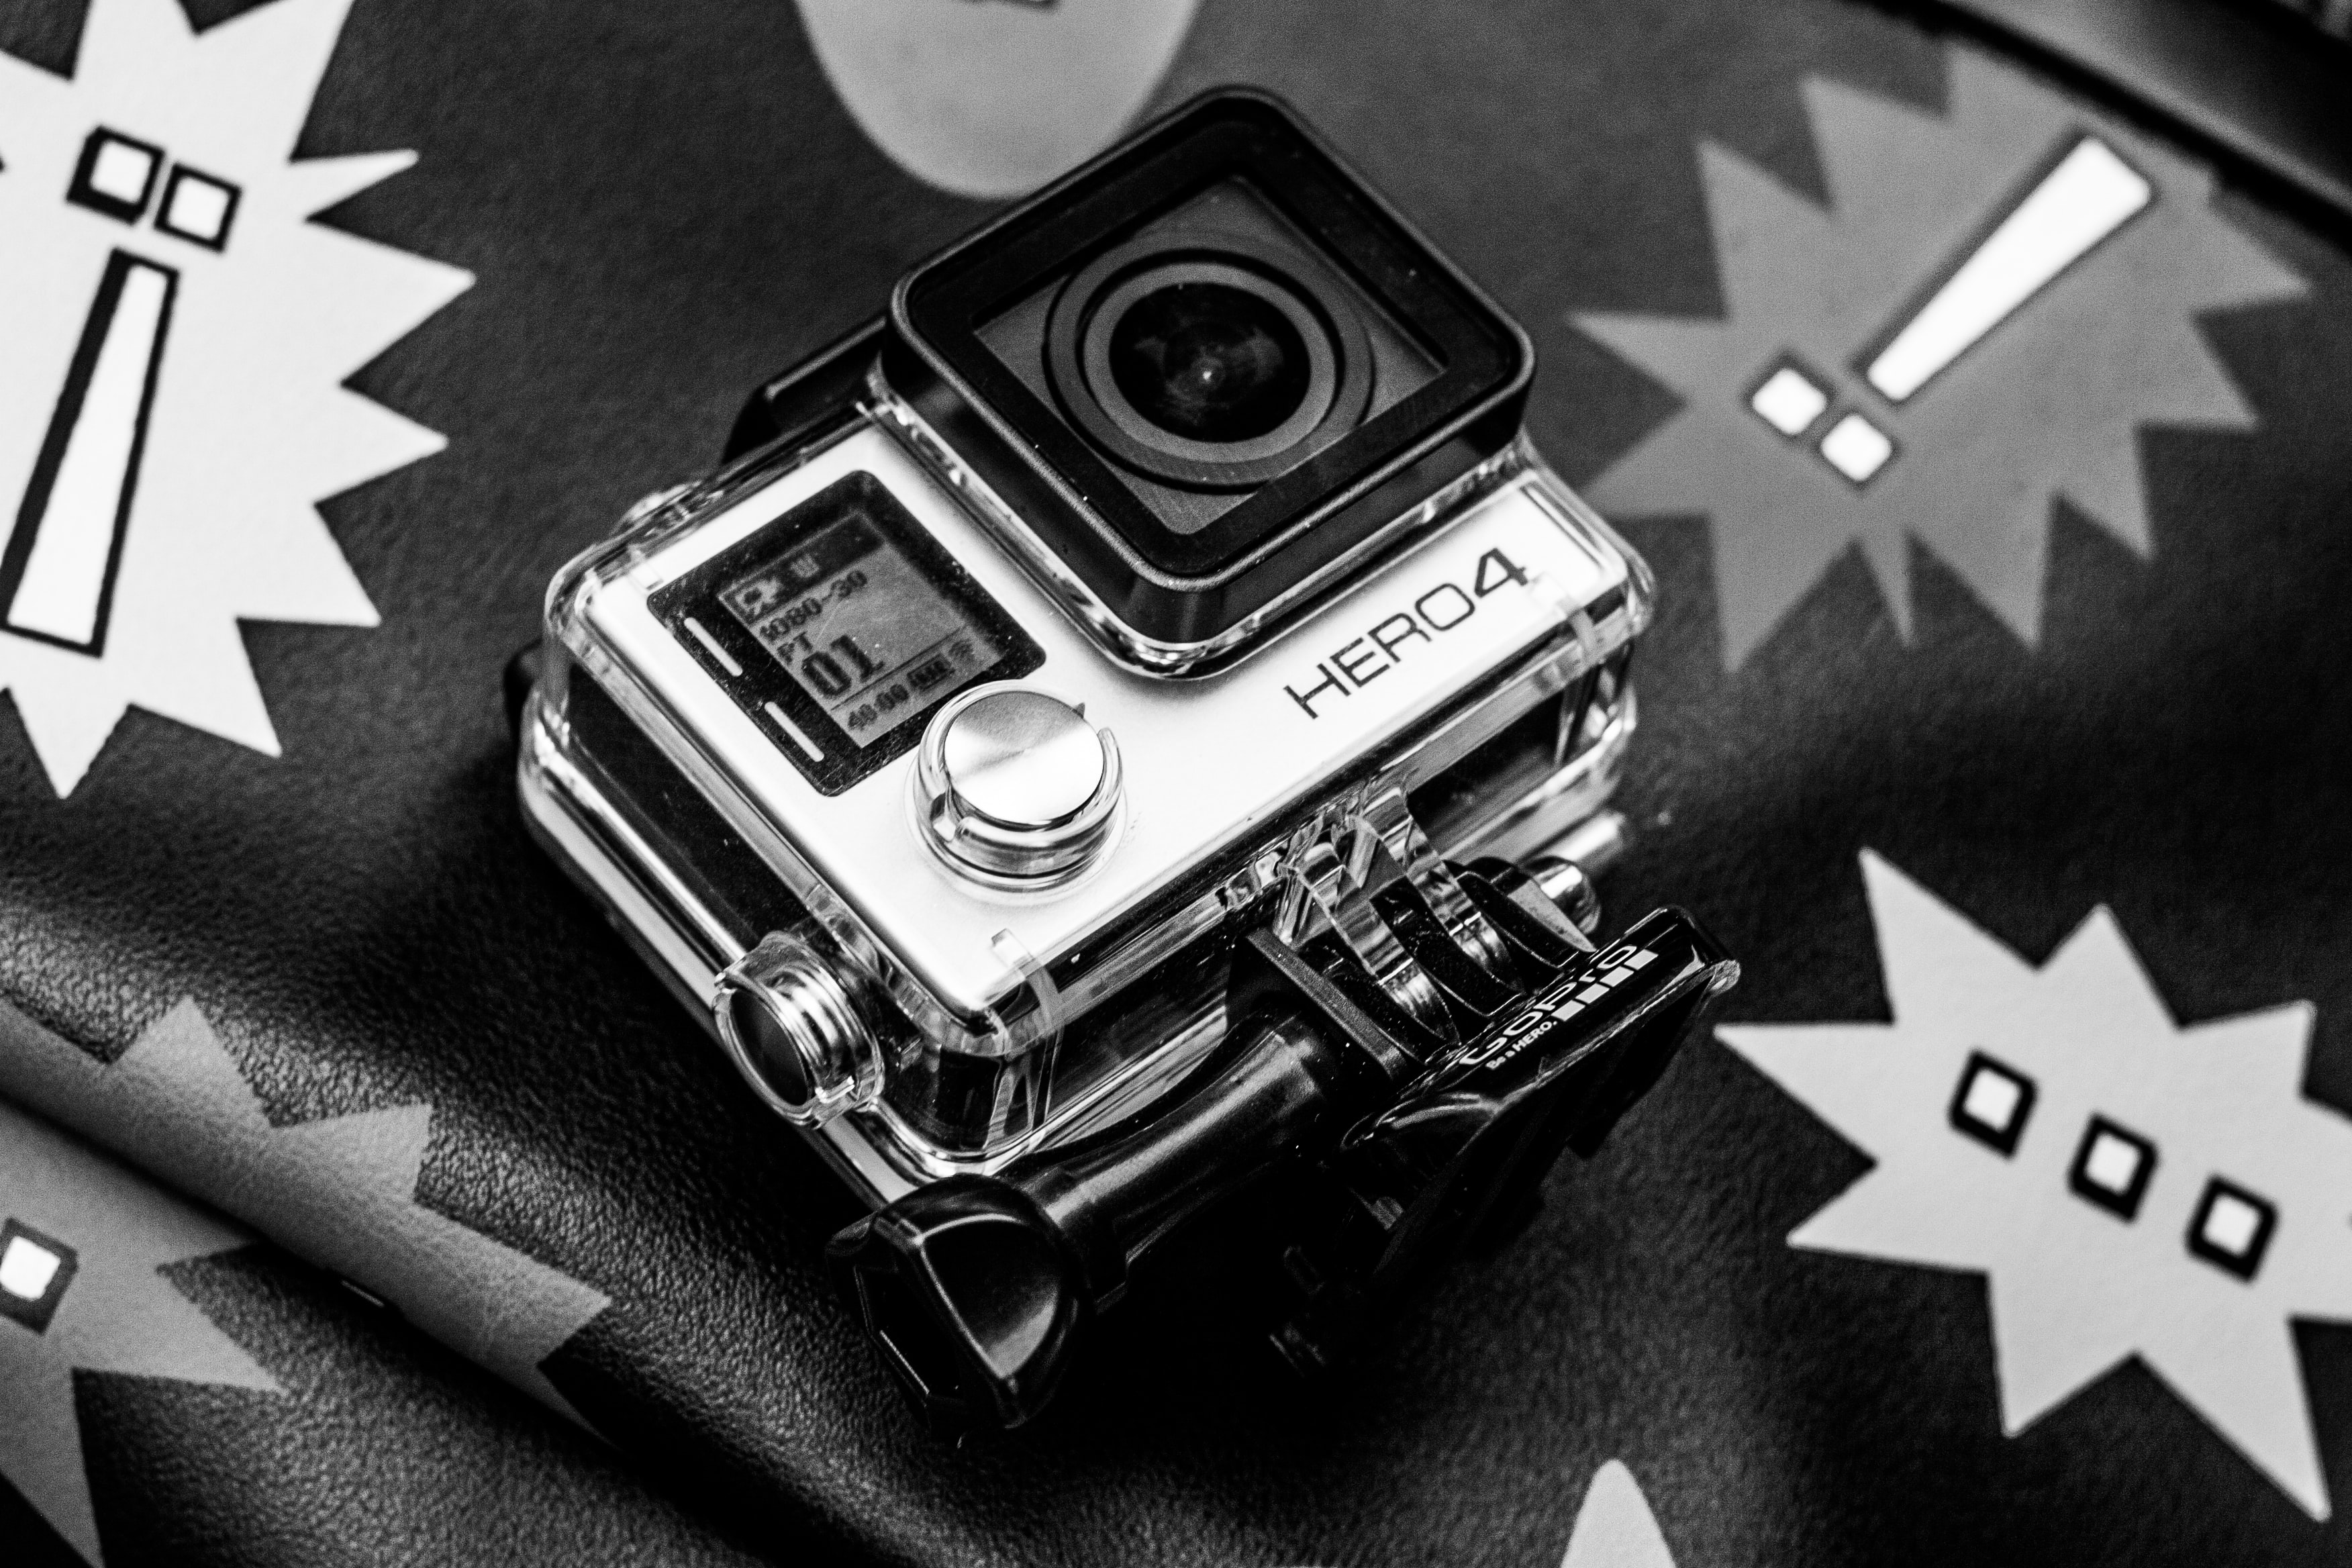 grayscale photo of Go PRO HERO4 action camera